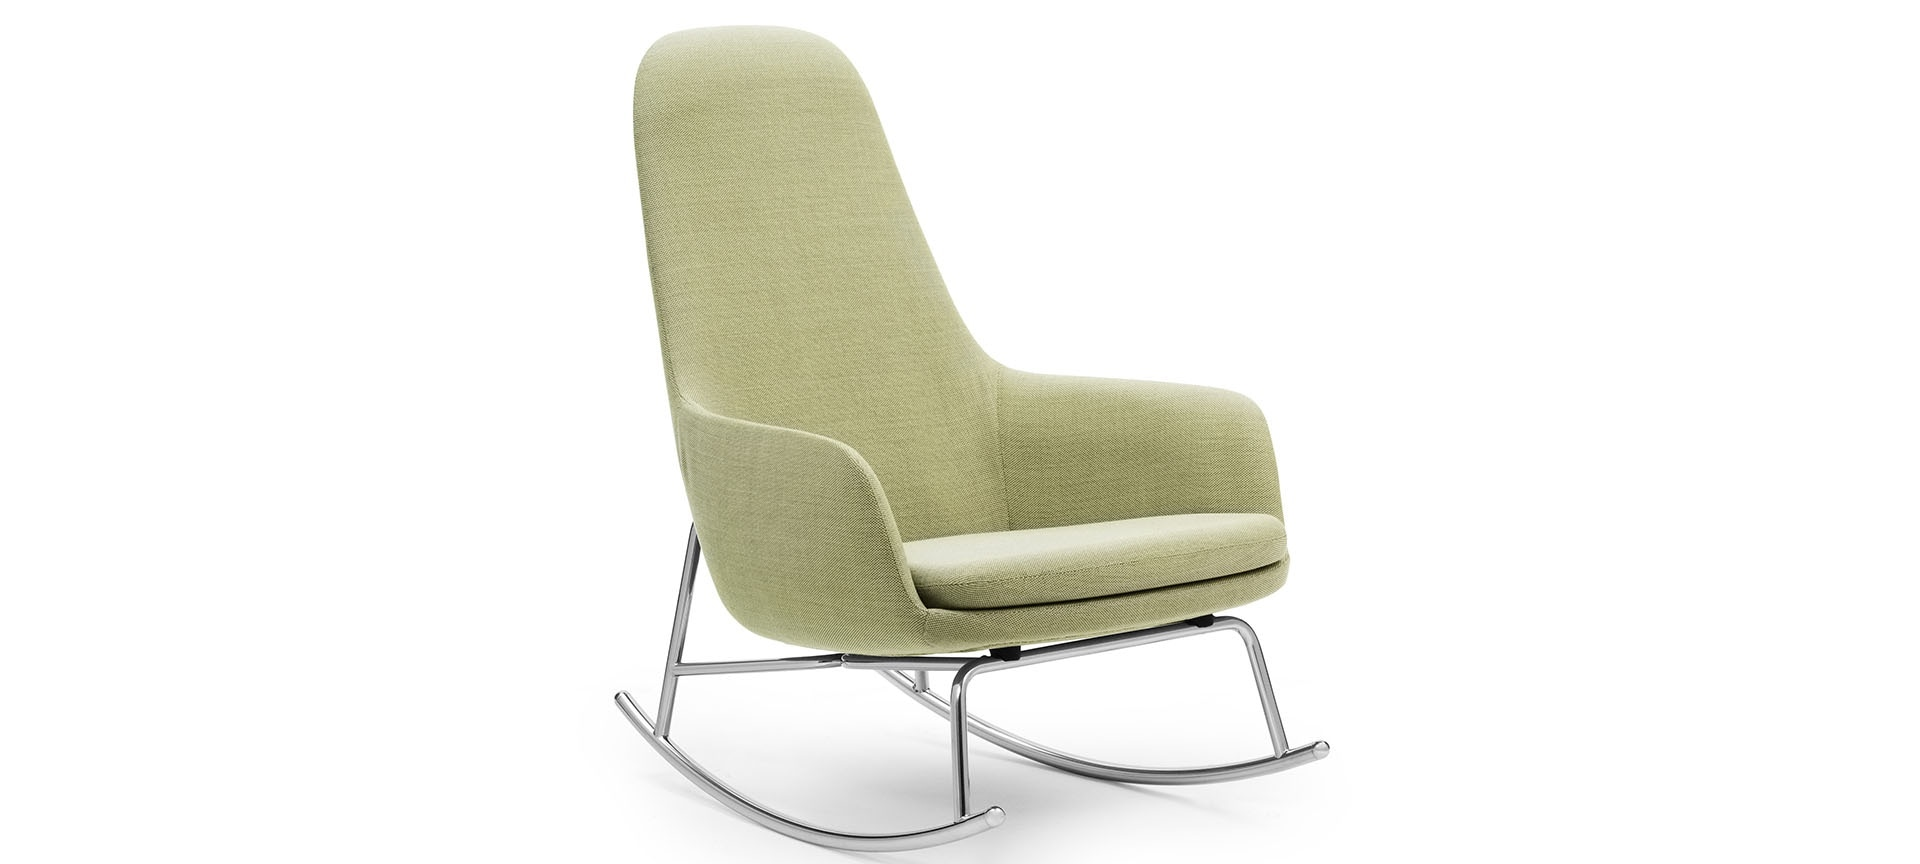 Rocking chair haut era normann copenhagen blou paris - Normann copenhagen paris ...